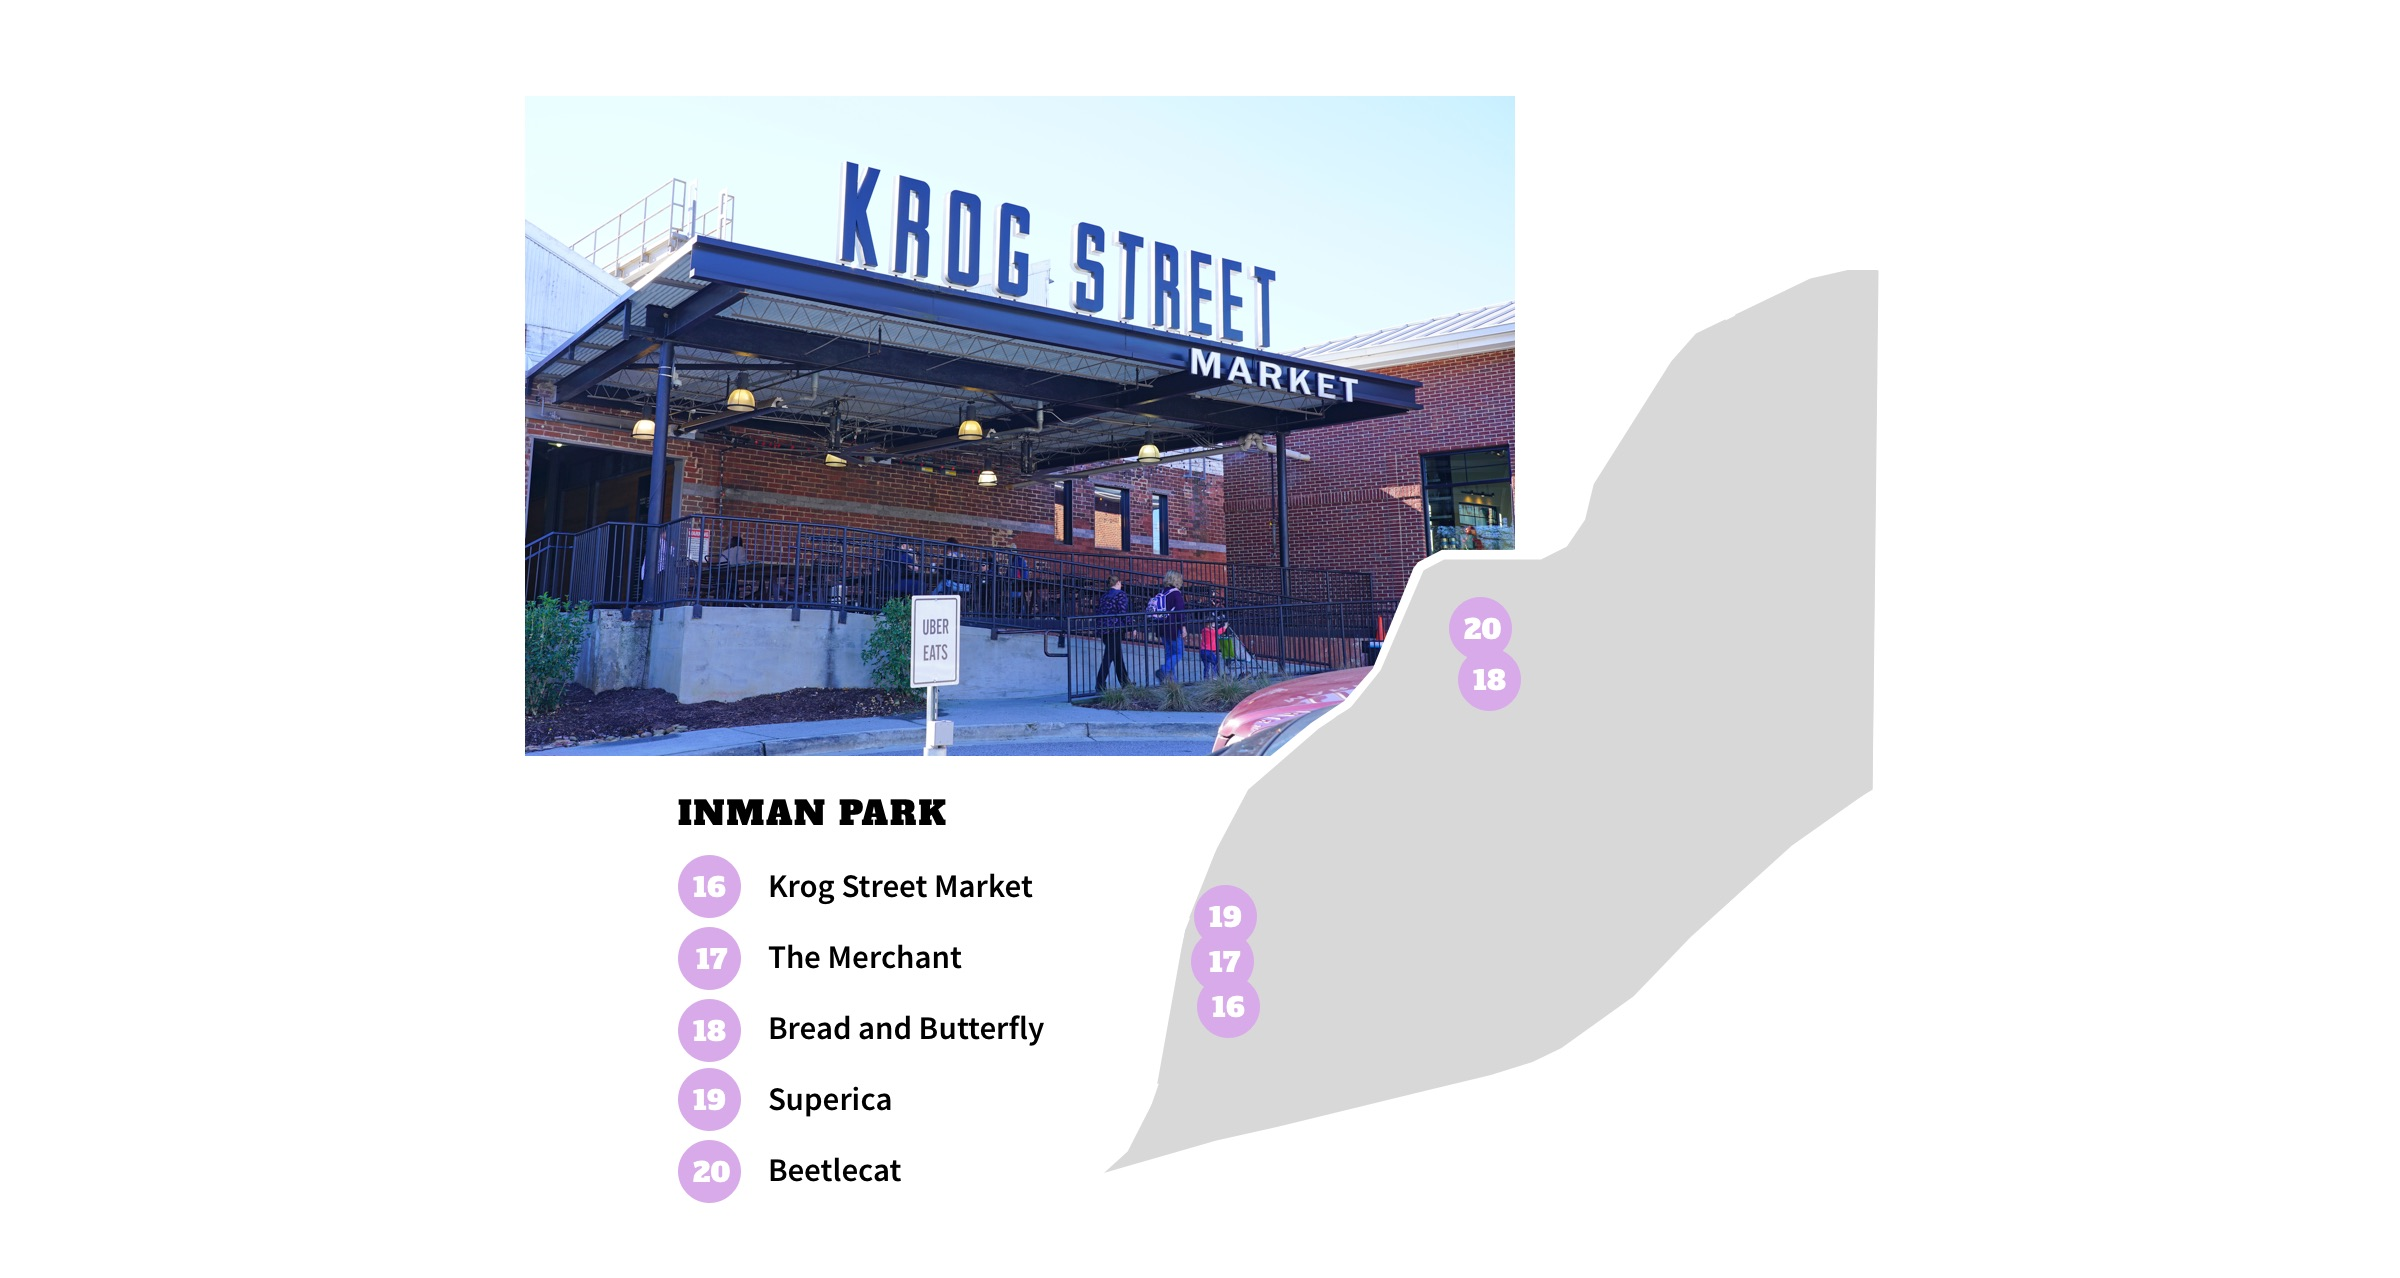 Inman Park Neighborhood Map - Atlanta